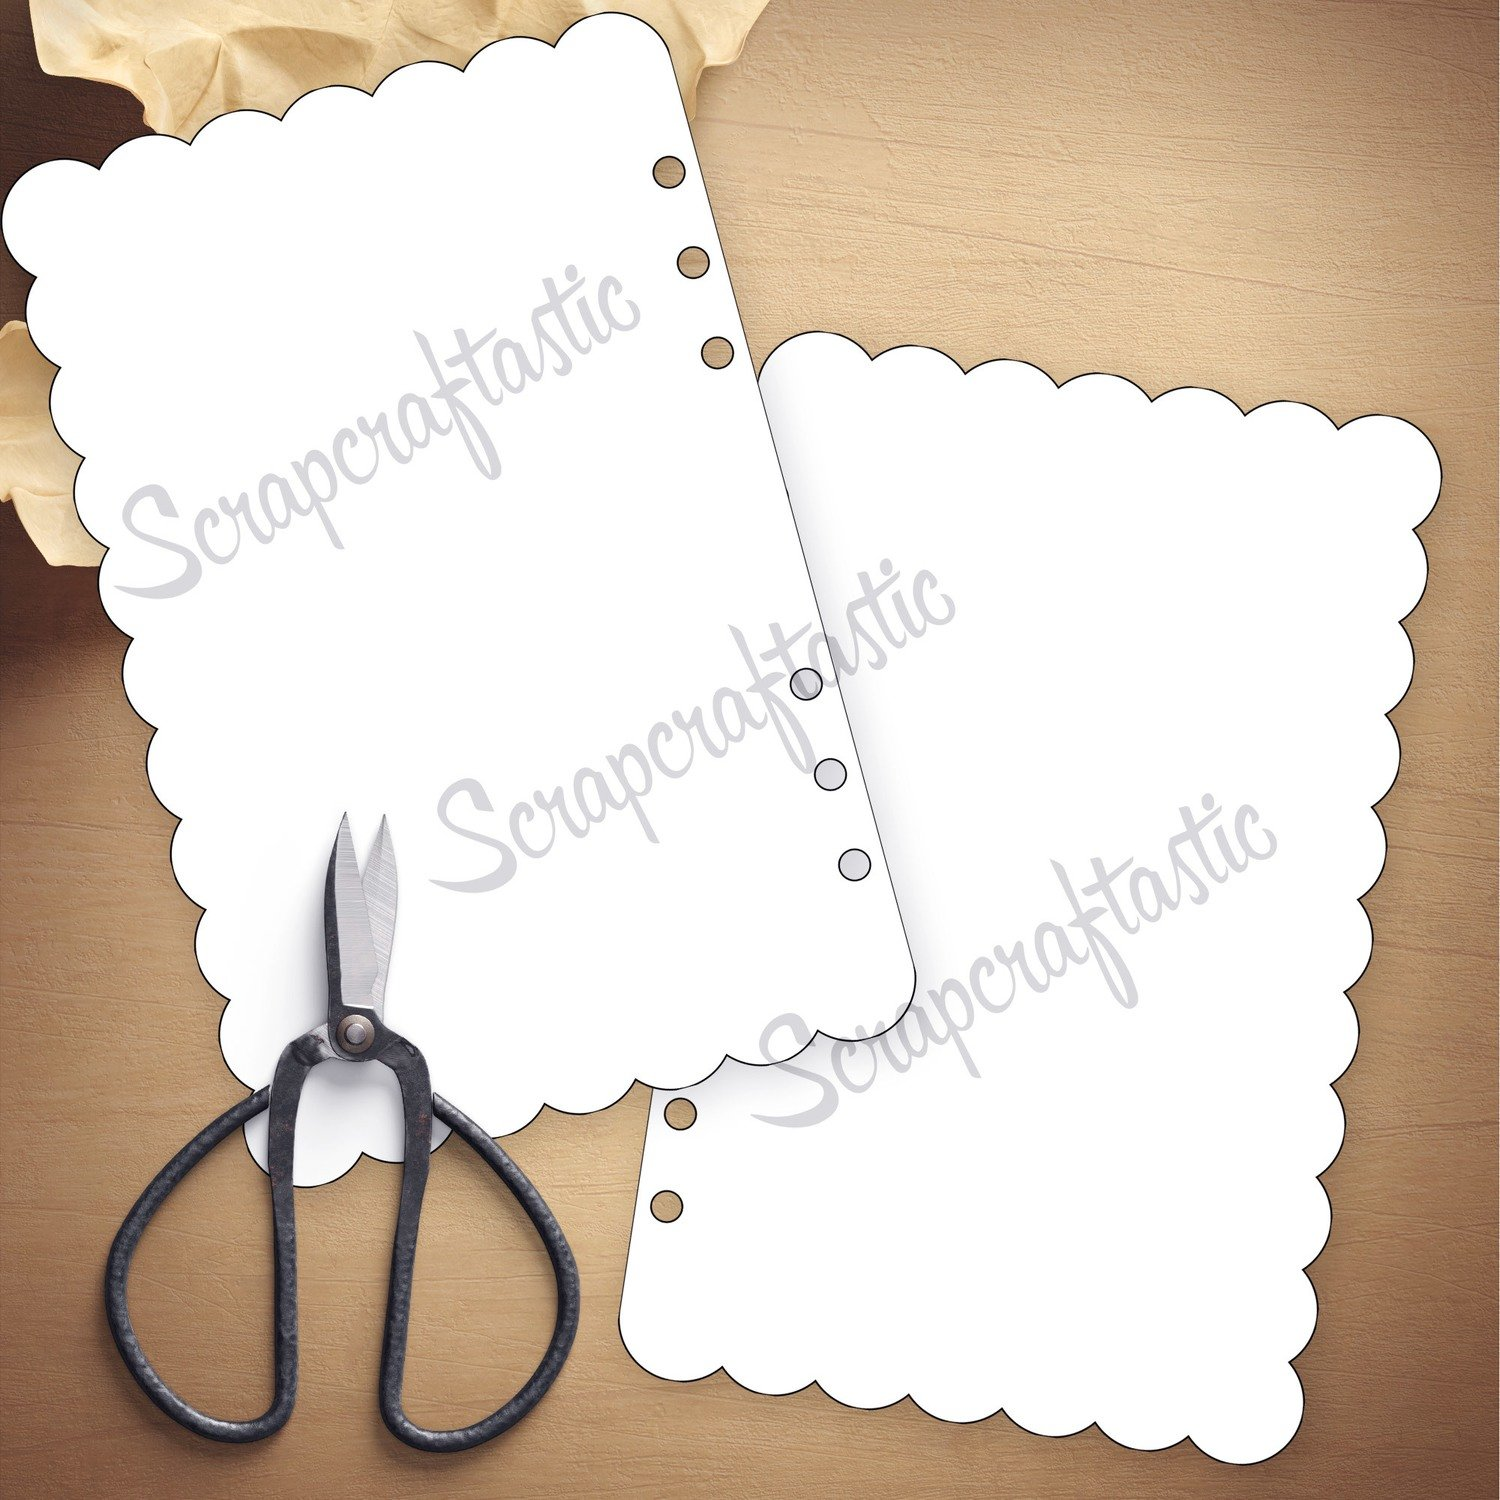 HALF LETTER A5 RINGS - Scallop Dashboard Cut Files and Templates